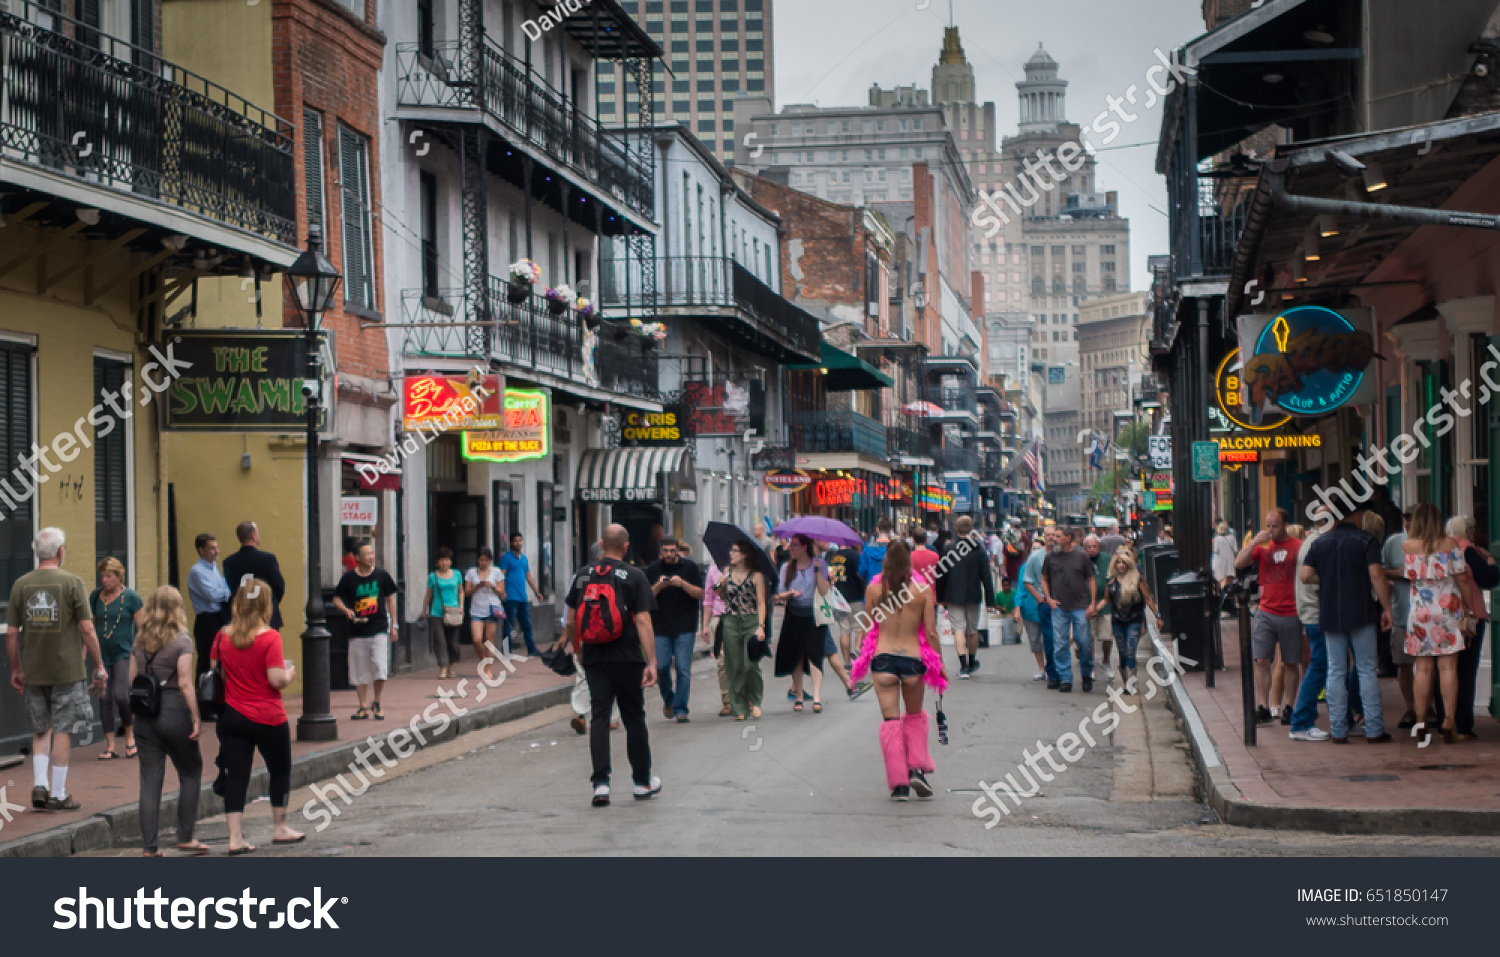 New Orleans, Louisiana, USA - May 22, 2017: People walk along Bourbon Street in the French Quarter, a destination famous for wild parties, Jazz music and people watching.